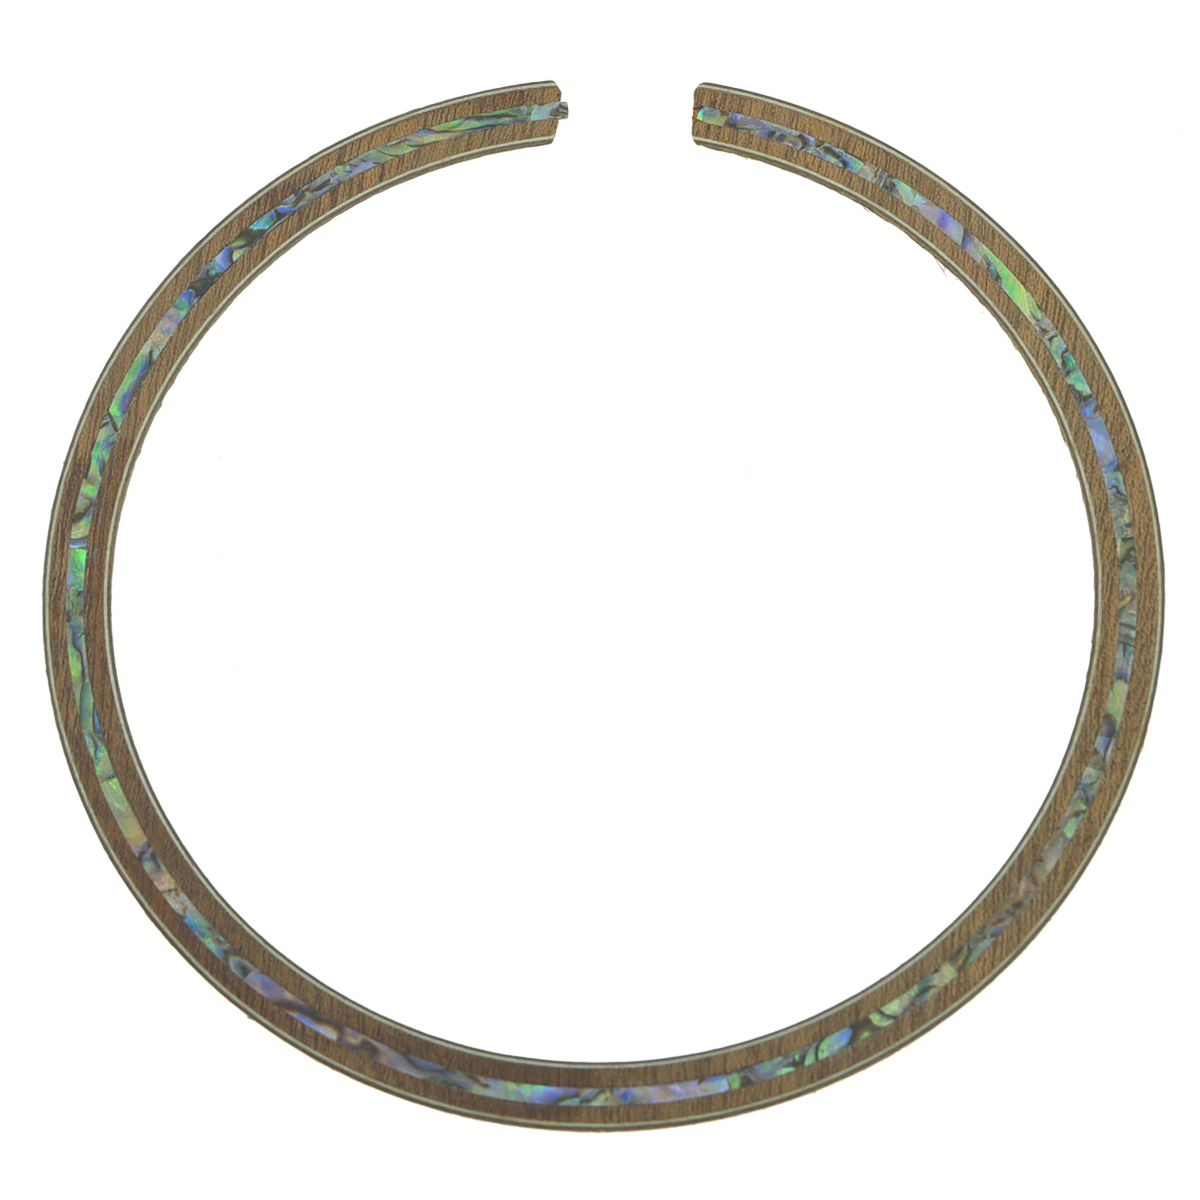 Dopro Acoustic Guitar Soundhole Sapelli Rosette with Full Abalone Shell Inlay 110mm*8mm*0.8mm yibuy 300 x acoustic guitar white bone abalone dot brass circle bridge end pins